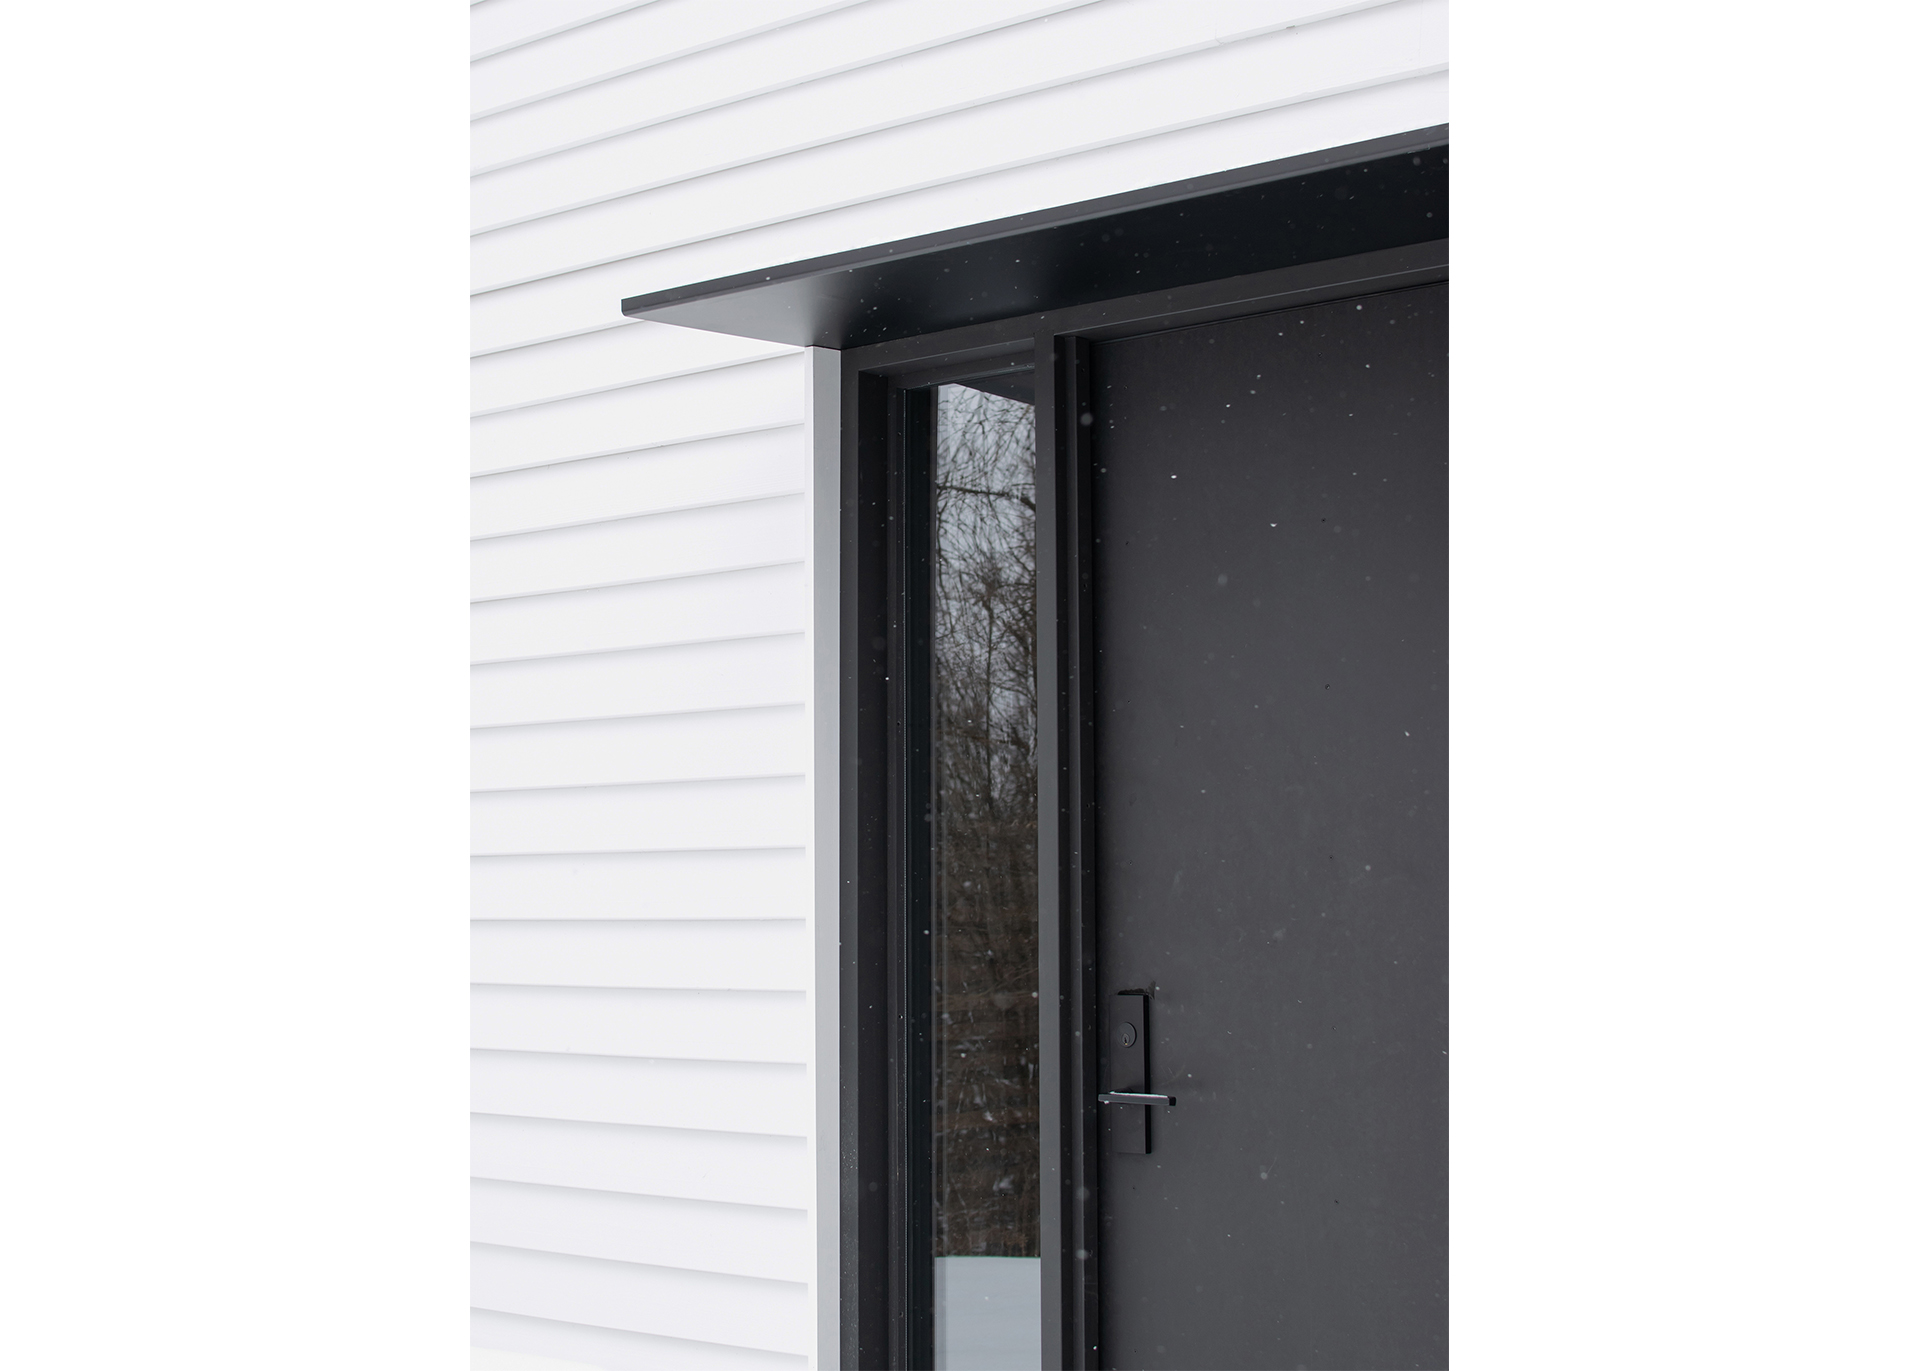 27 CountyLineHouse - Exrterior Door Detail WEB.jpg